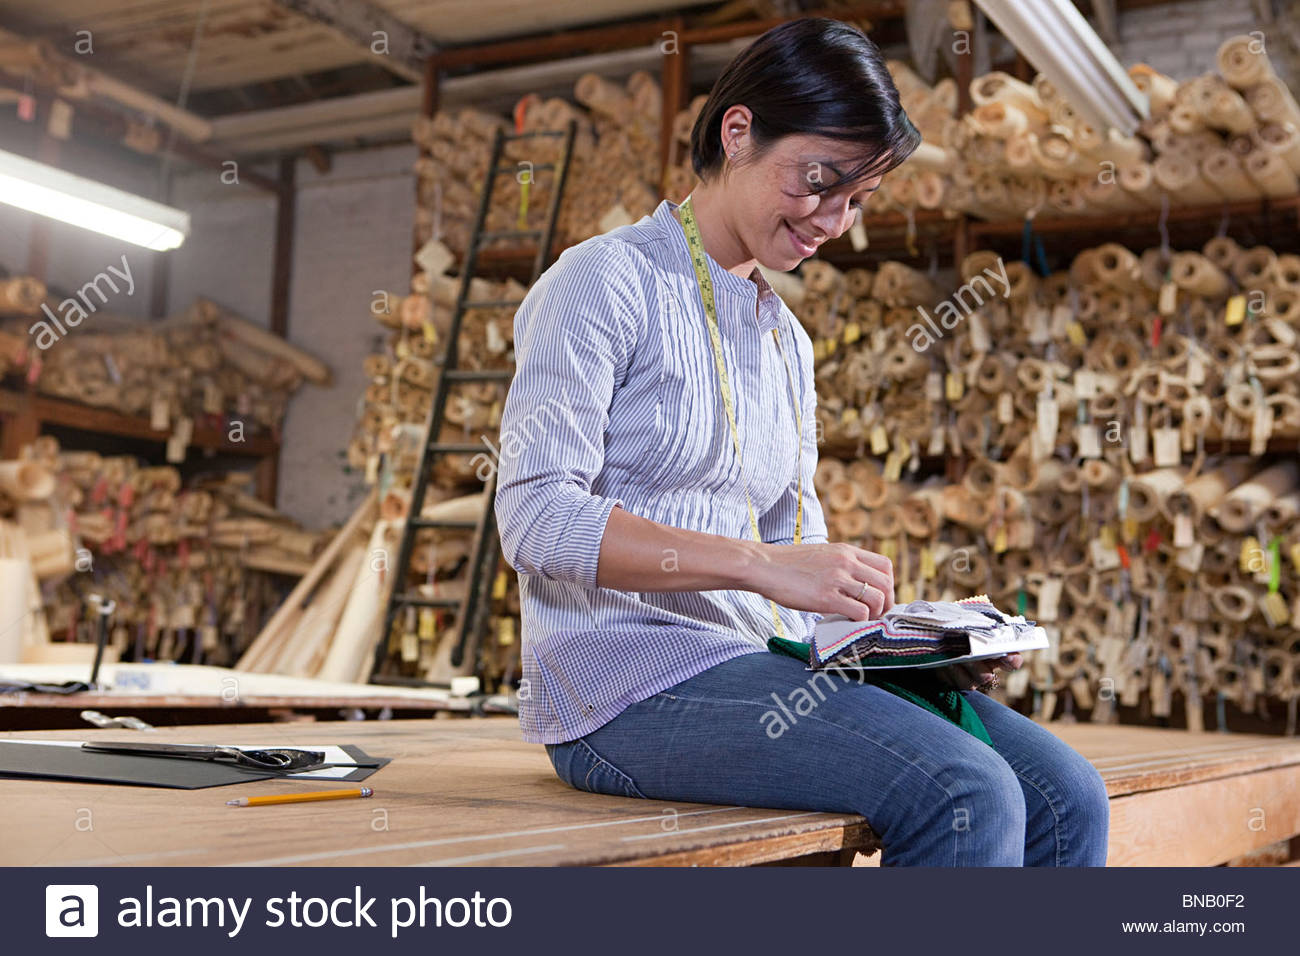 Tailor looking at fabric samples - Stock Image